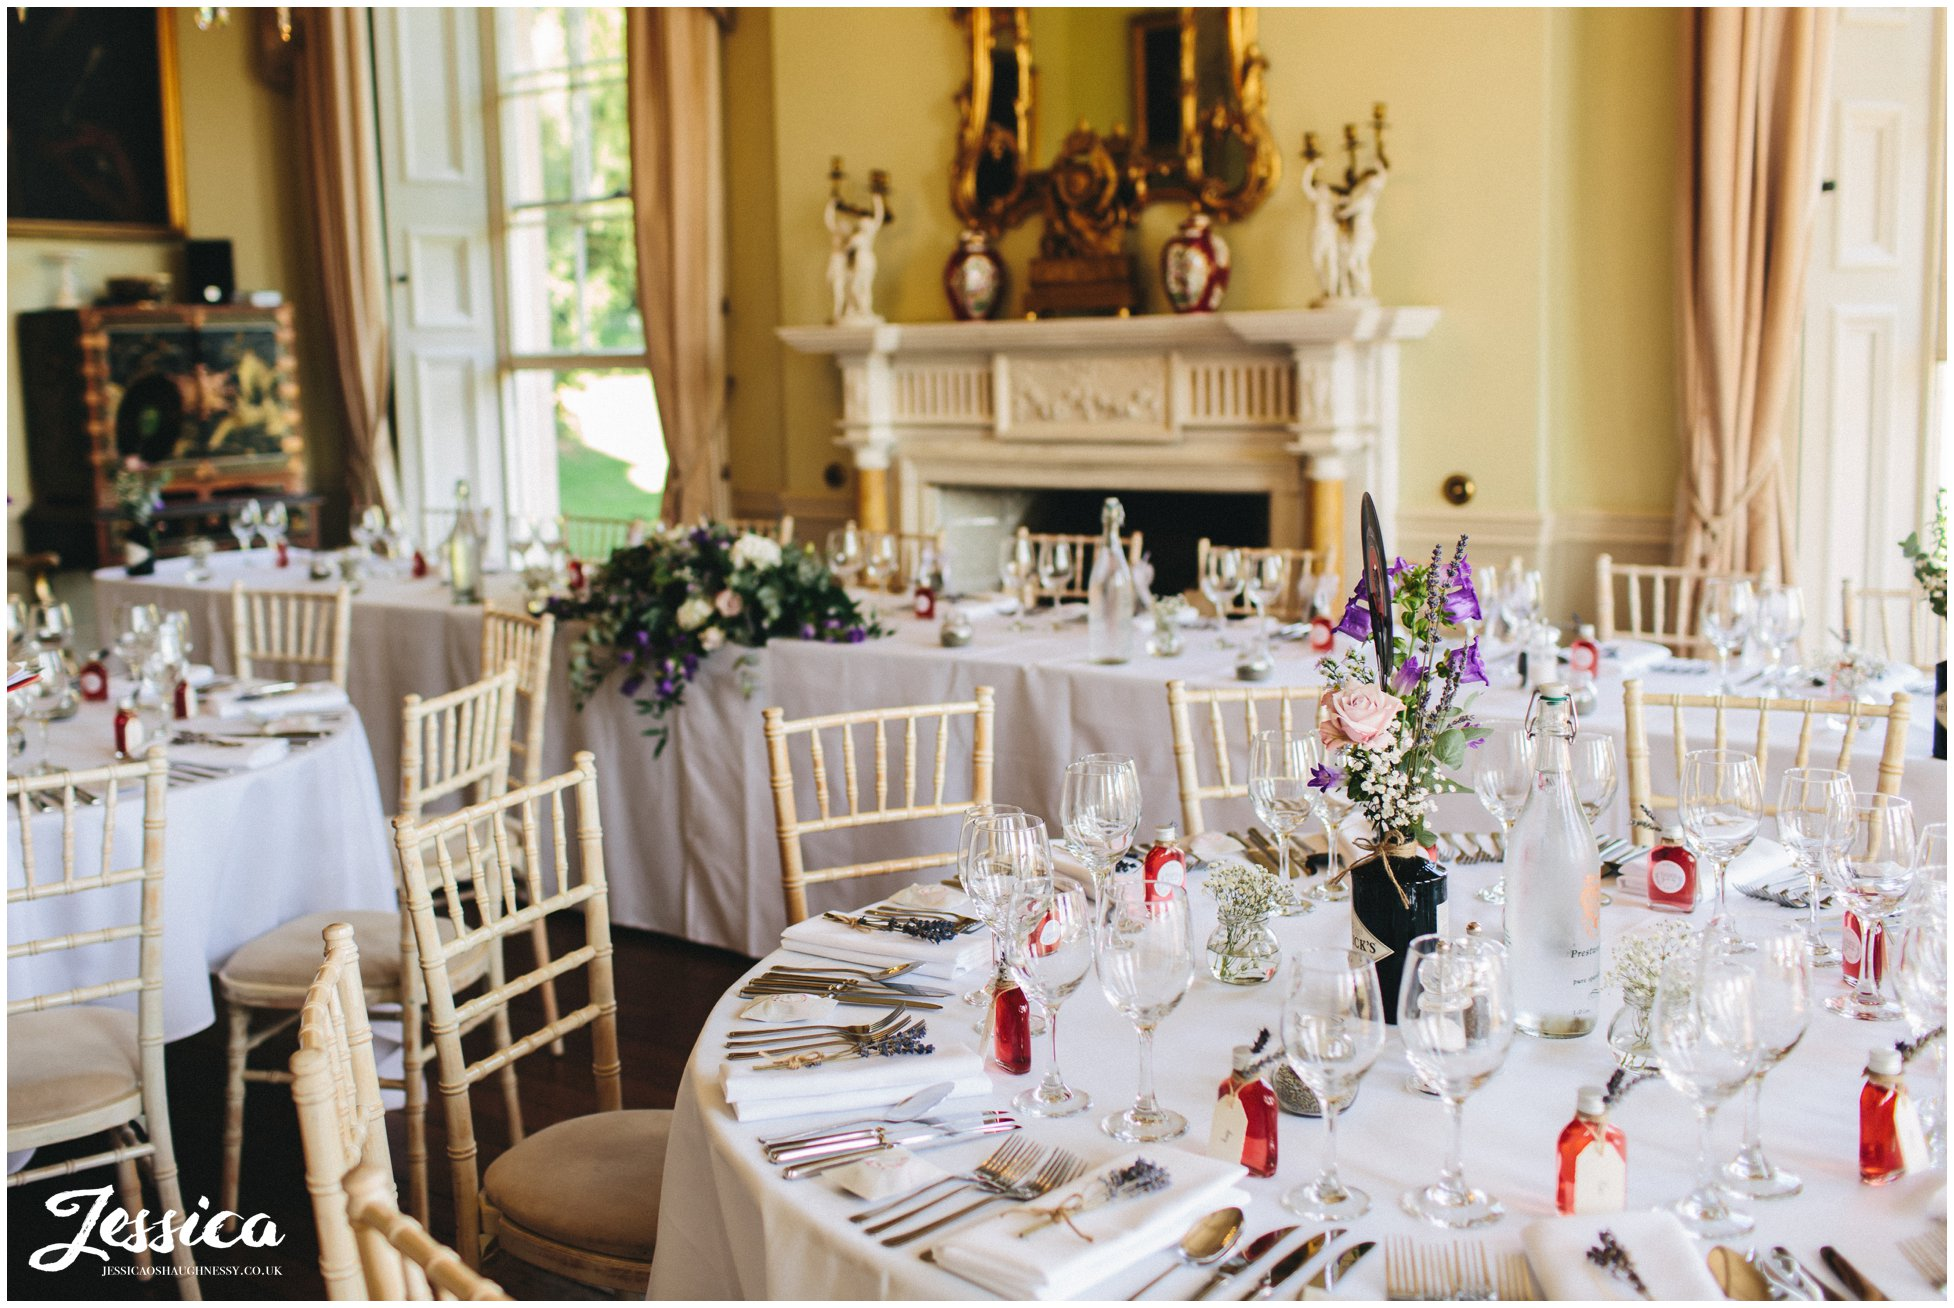 tables covered in wedding details